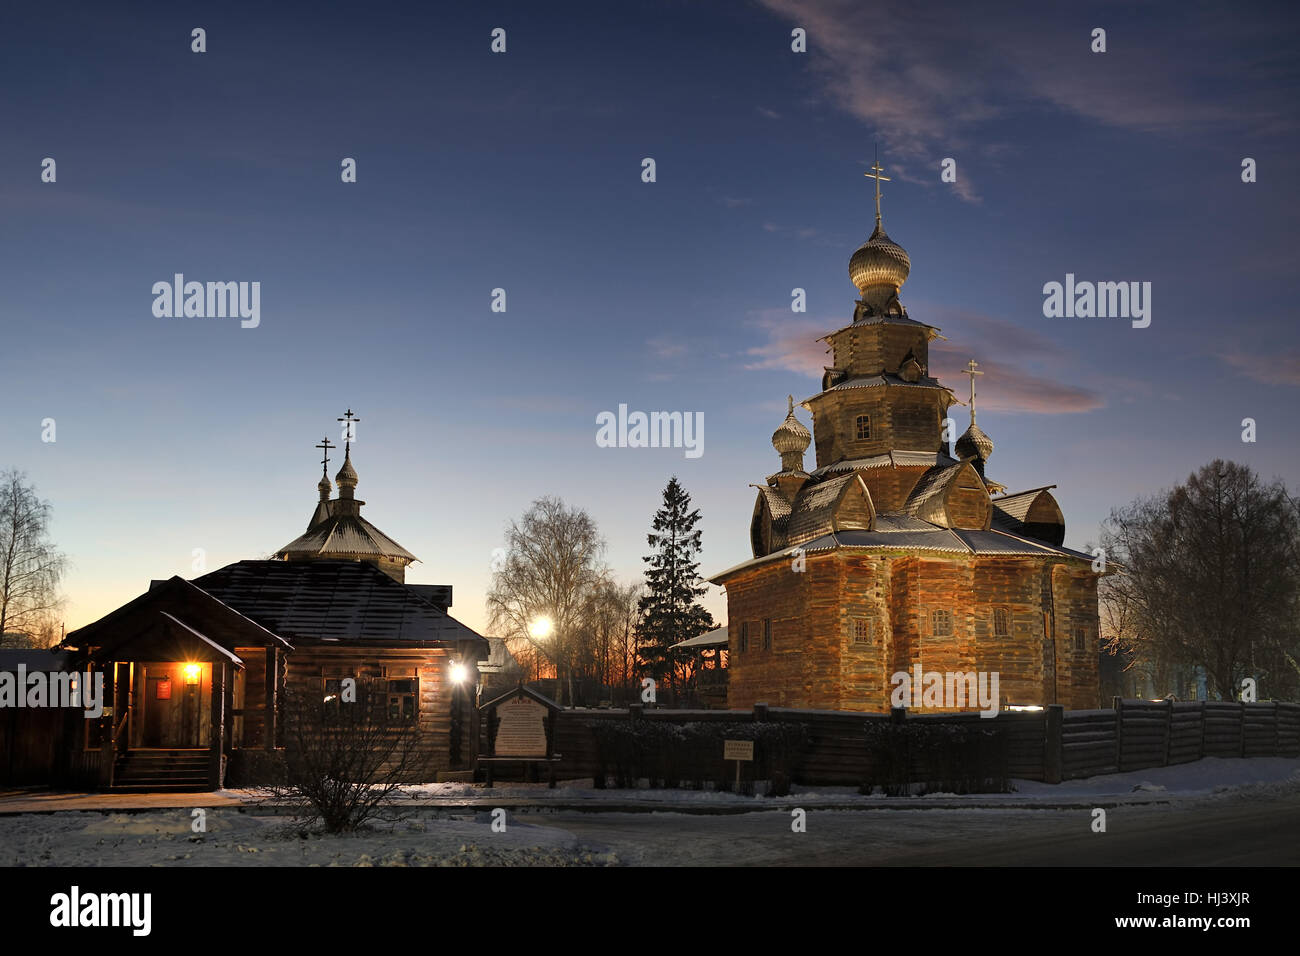 At the Entrance into Museum of Wooden Architecture at Winter Twilight. Suzdal, Russia - Stock Image